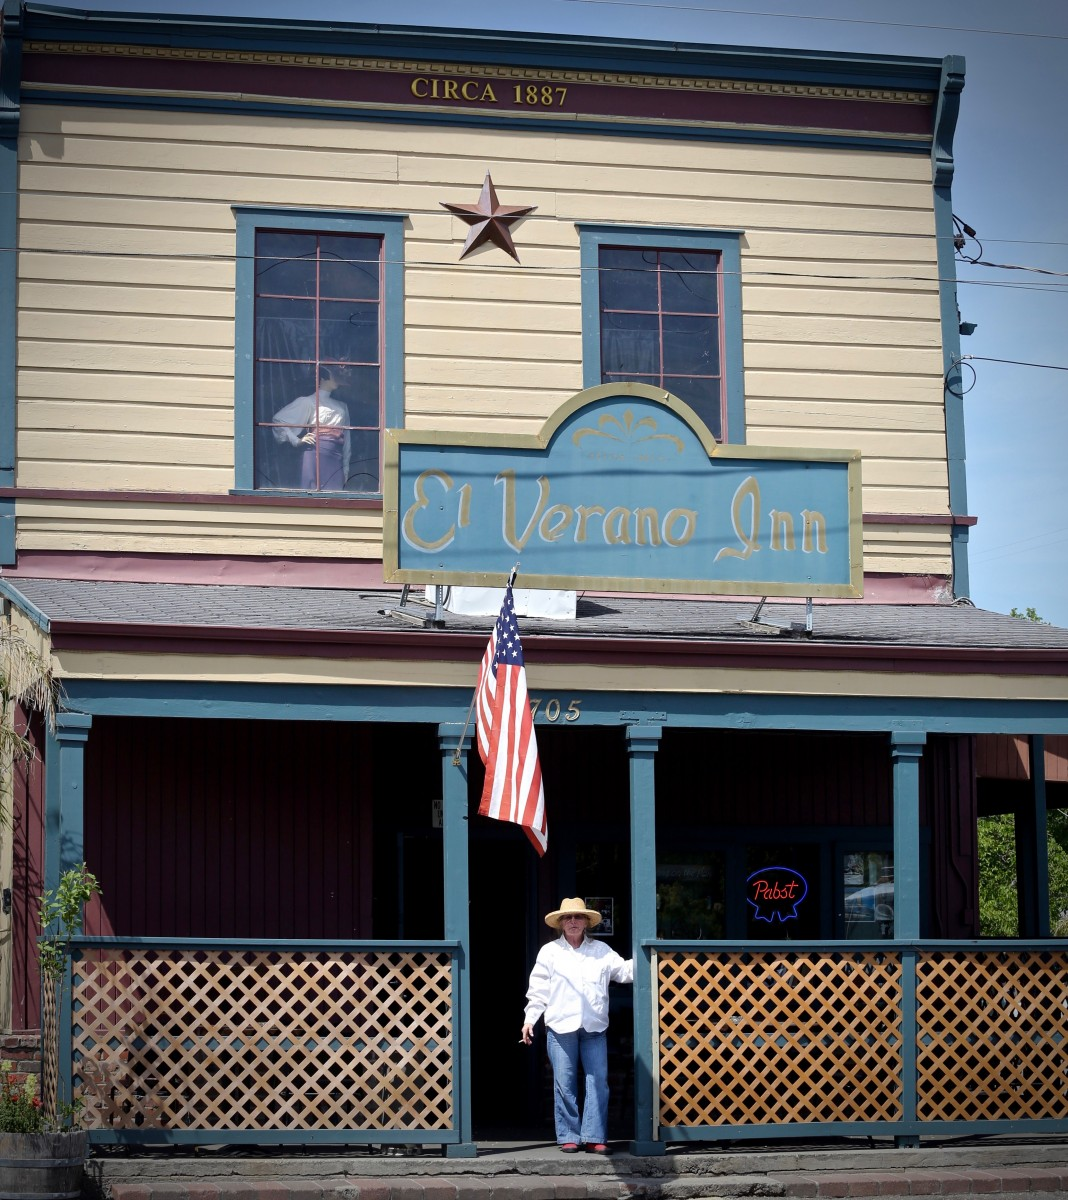 Phyllis Thiebaut, long time patron of El Verano Inn, stands on the front of Sonoma stands on the patio of Sonoma's El Verano Inn Friday, April 18, 2014. Thiebaut has been a patron of the El Verano Inn for the last 30 years. (Crista Jeremiason / The Press Democrat)